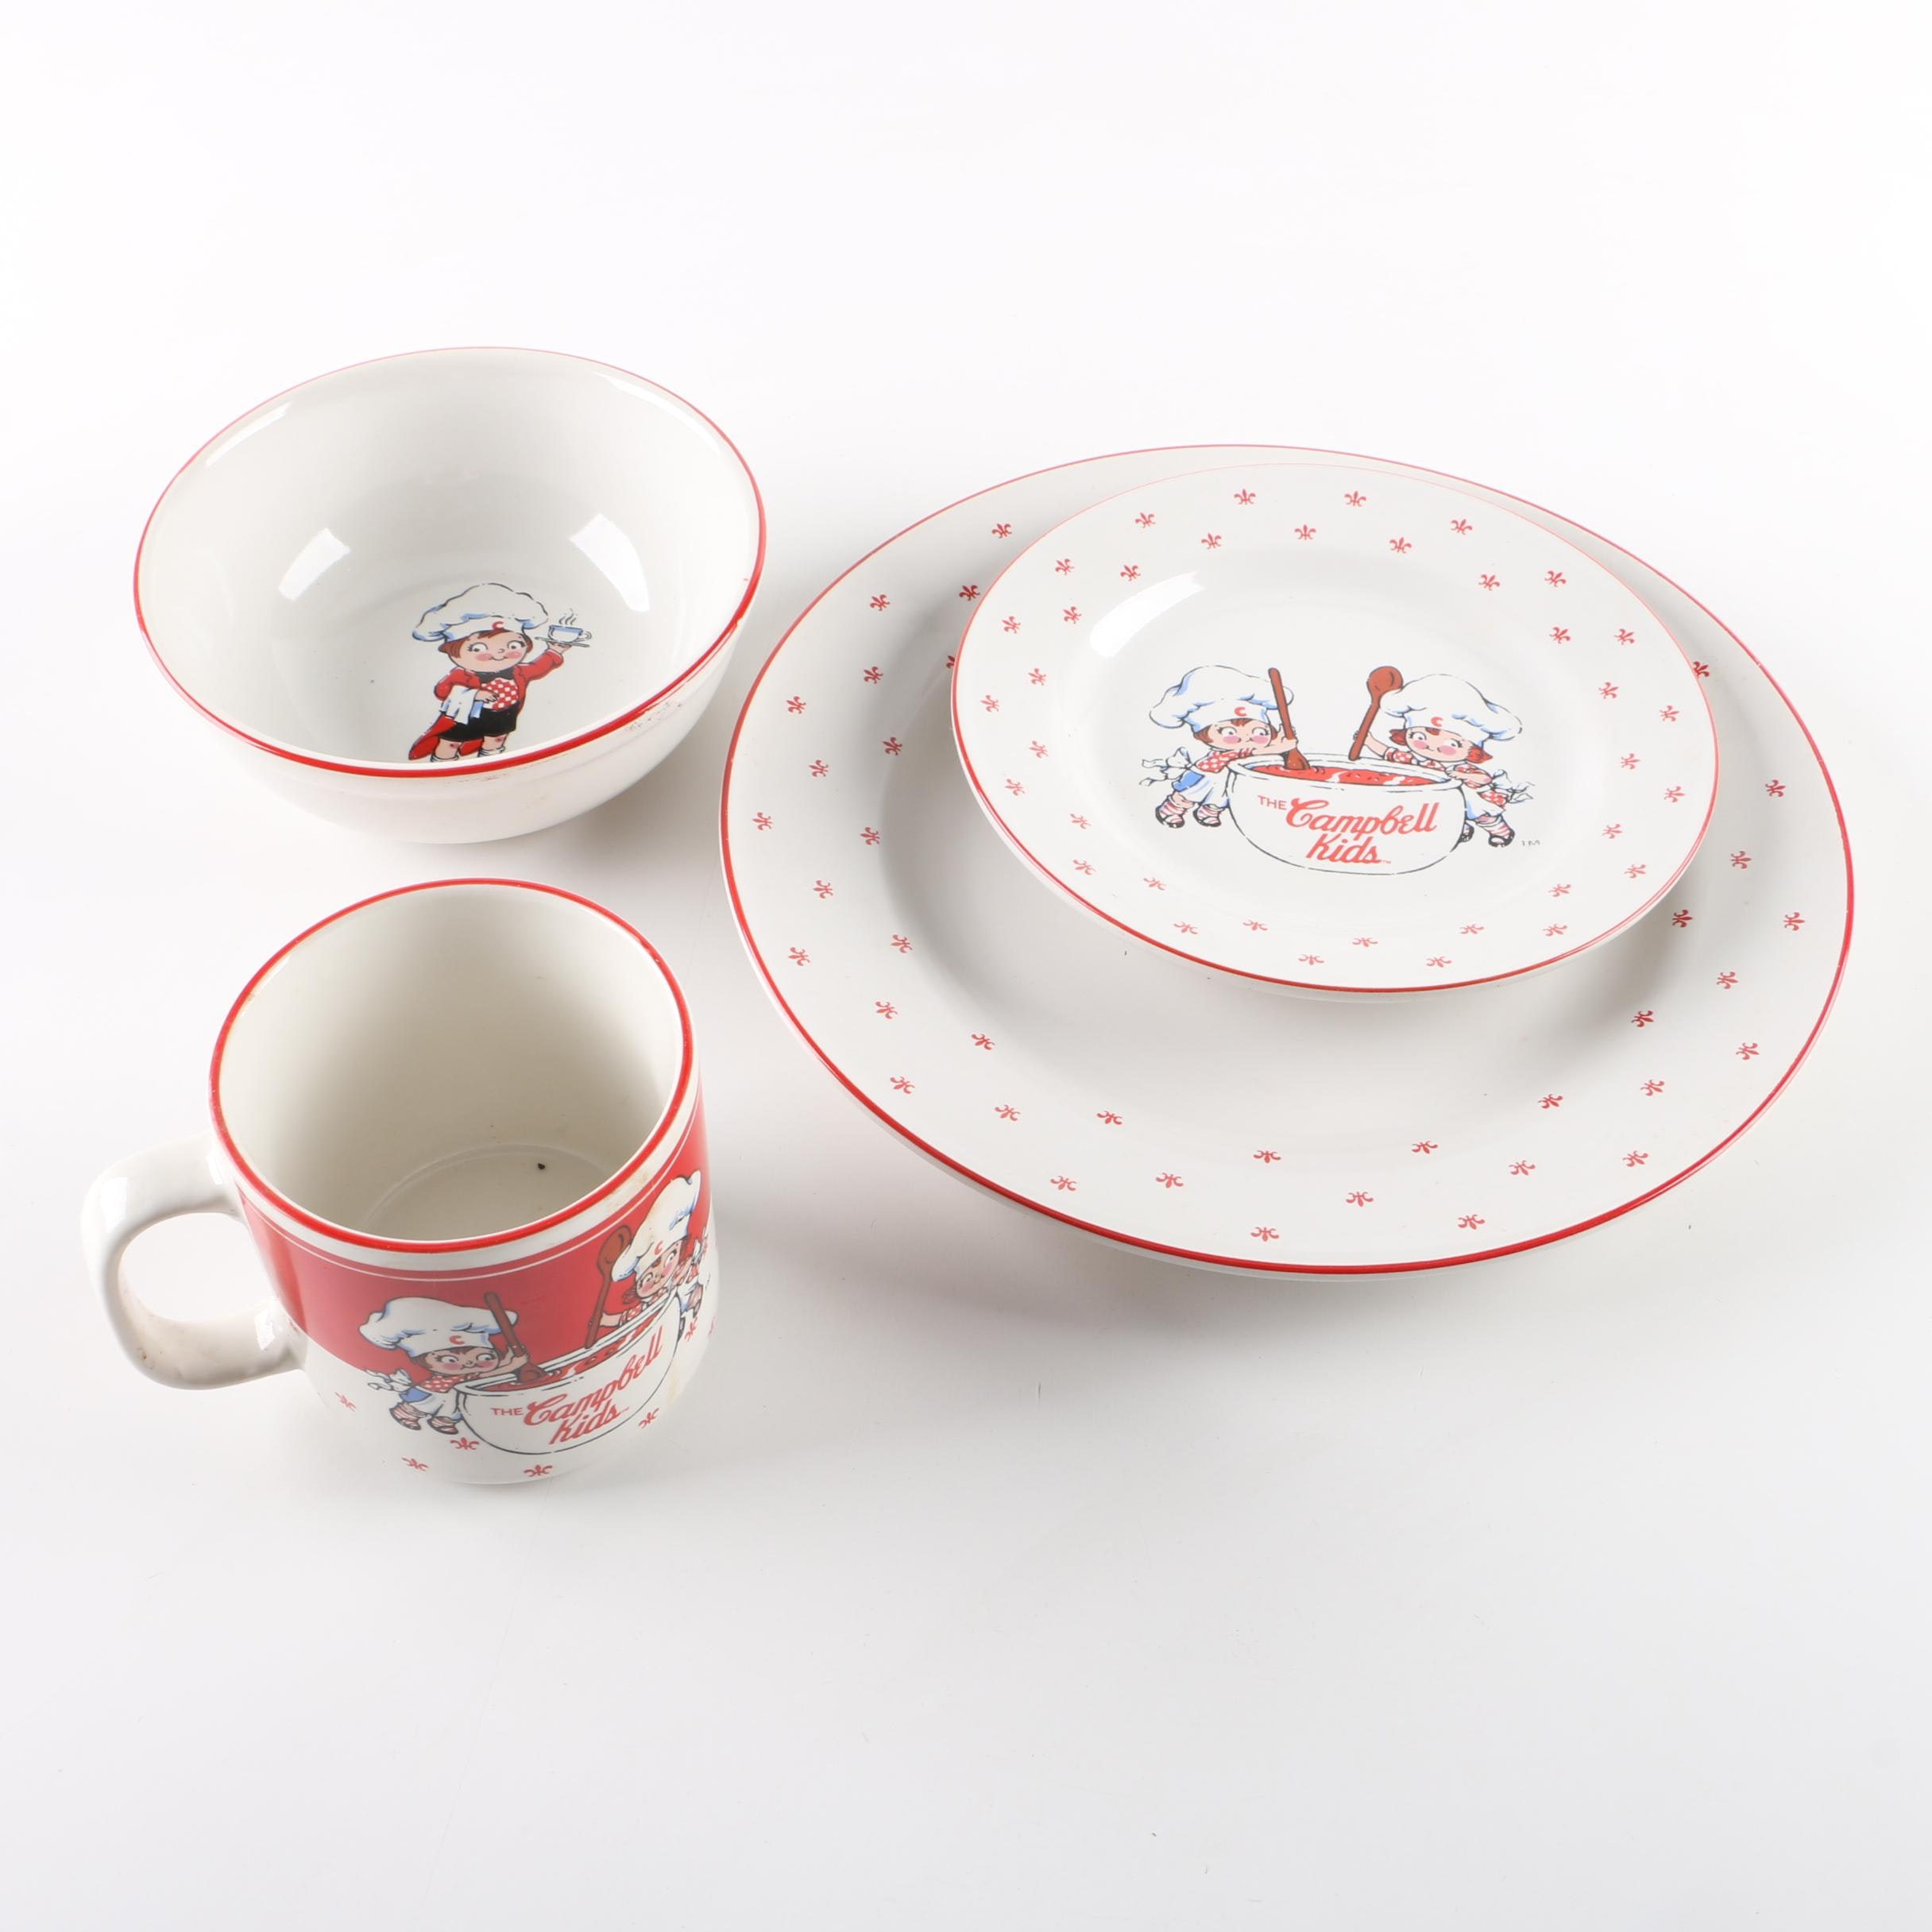 4 Pc. Campbell's Soup Dinnerware Set